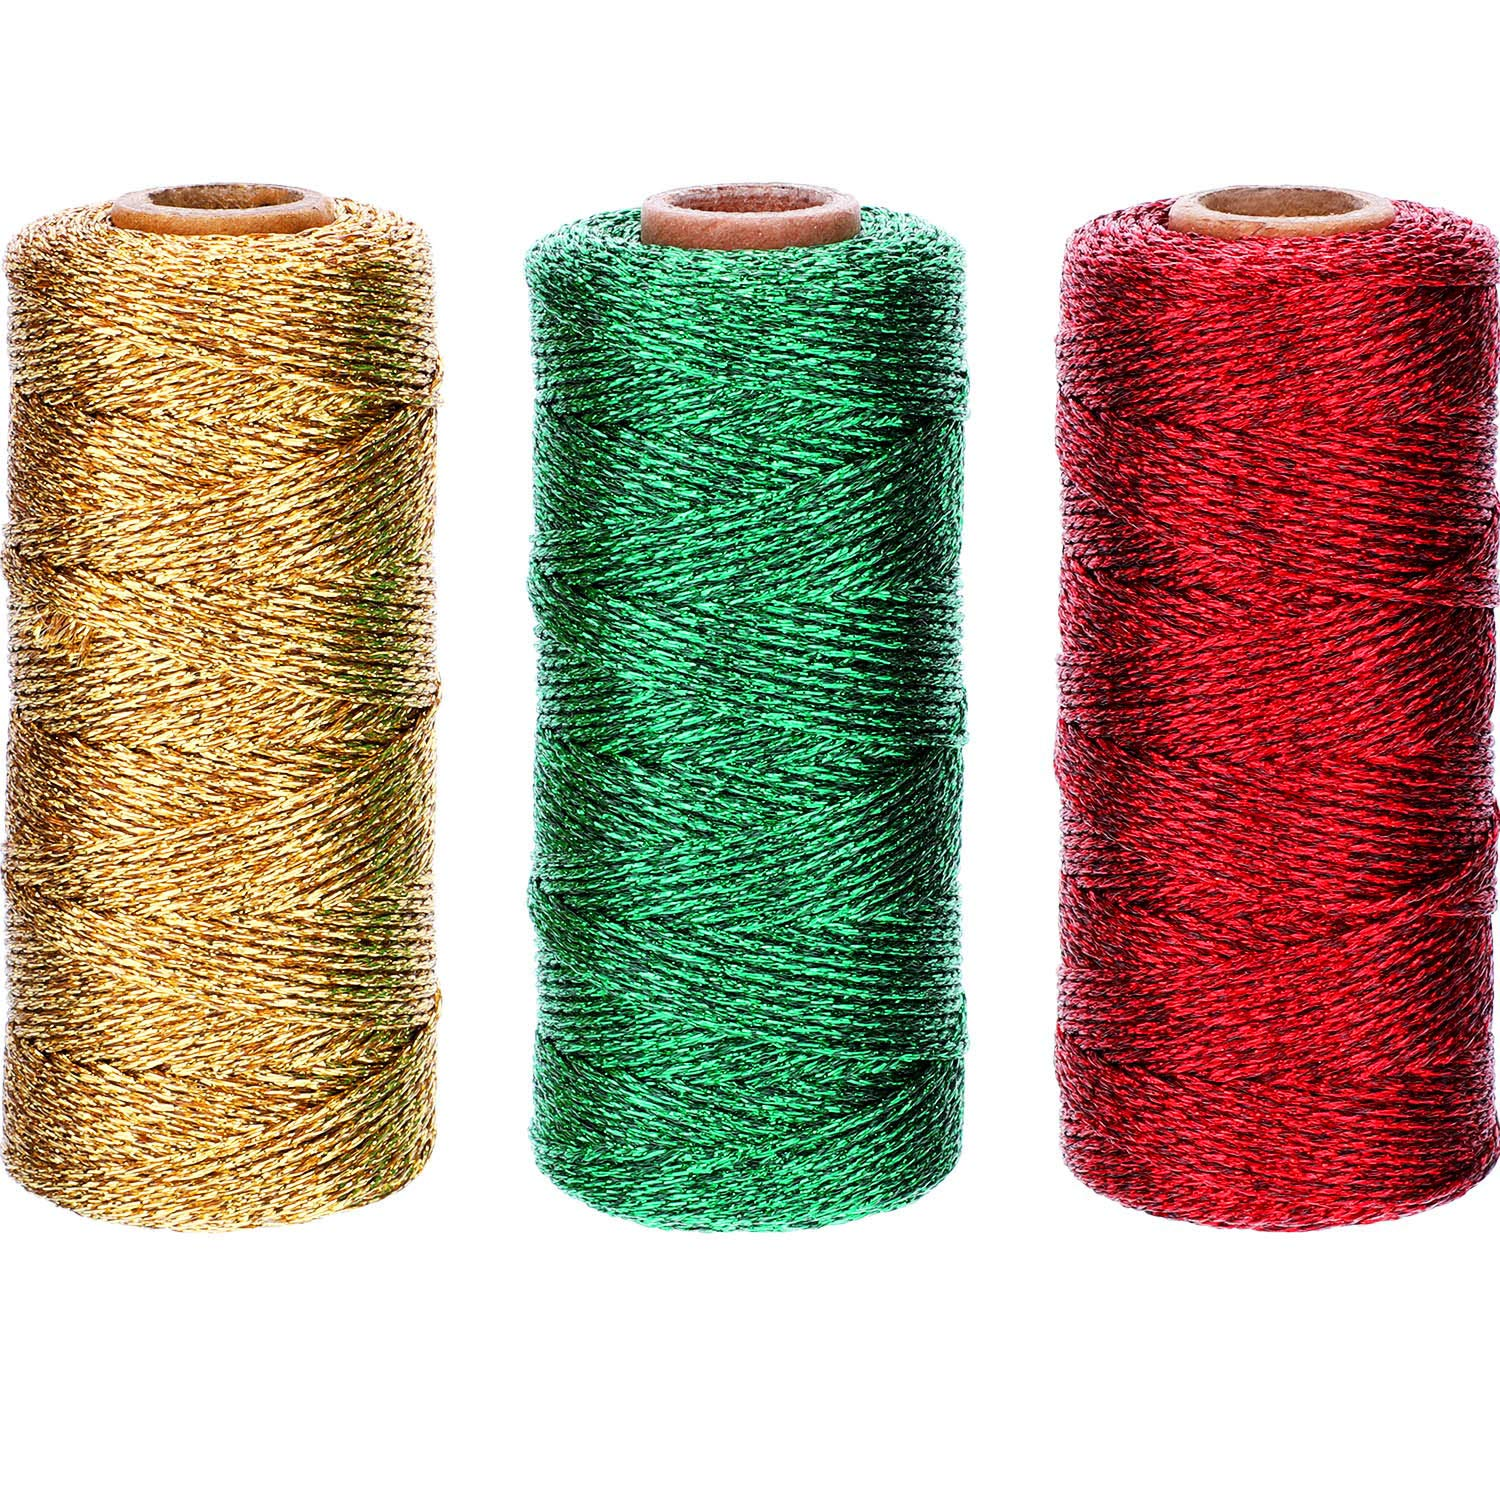 Pangda 330 Yard Totally Metallic Baker Twine Christmas Gift Wrapping Twine Assorted Twine String for DIY Crafts Presents, 3 Colors (Gold, Red, Green, 3 Rolls) by Pangda